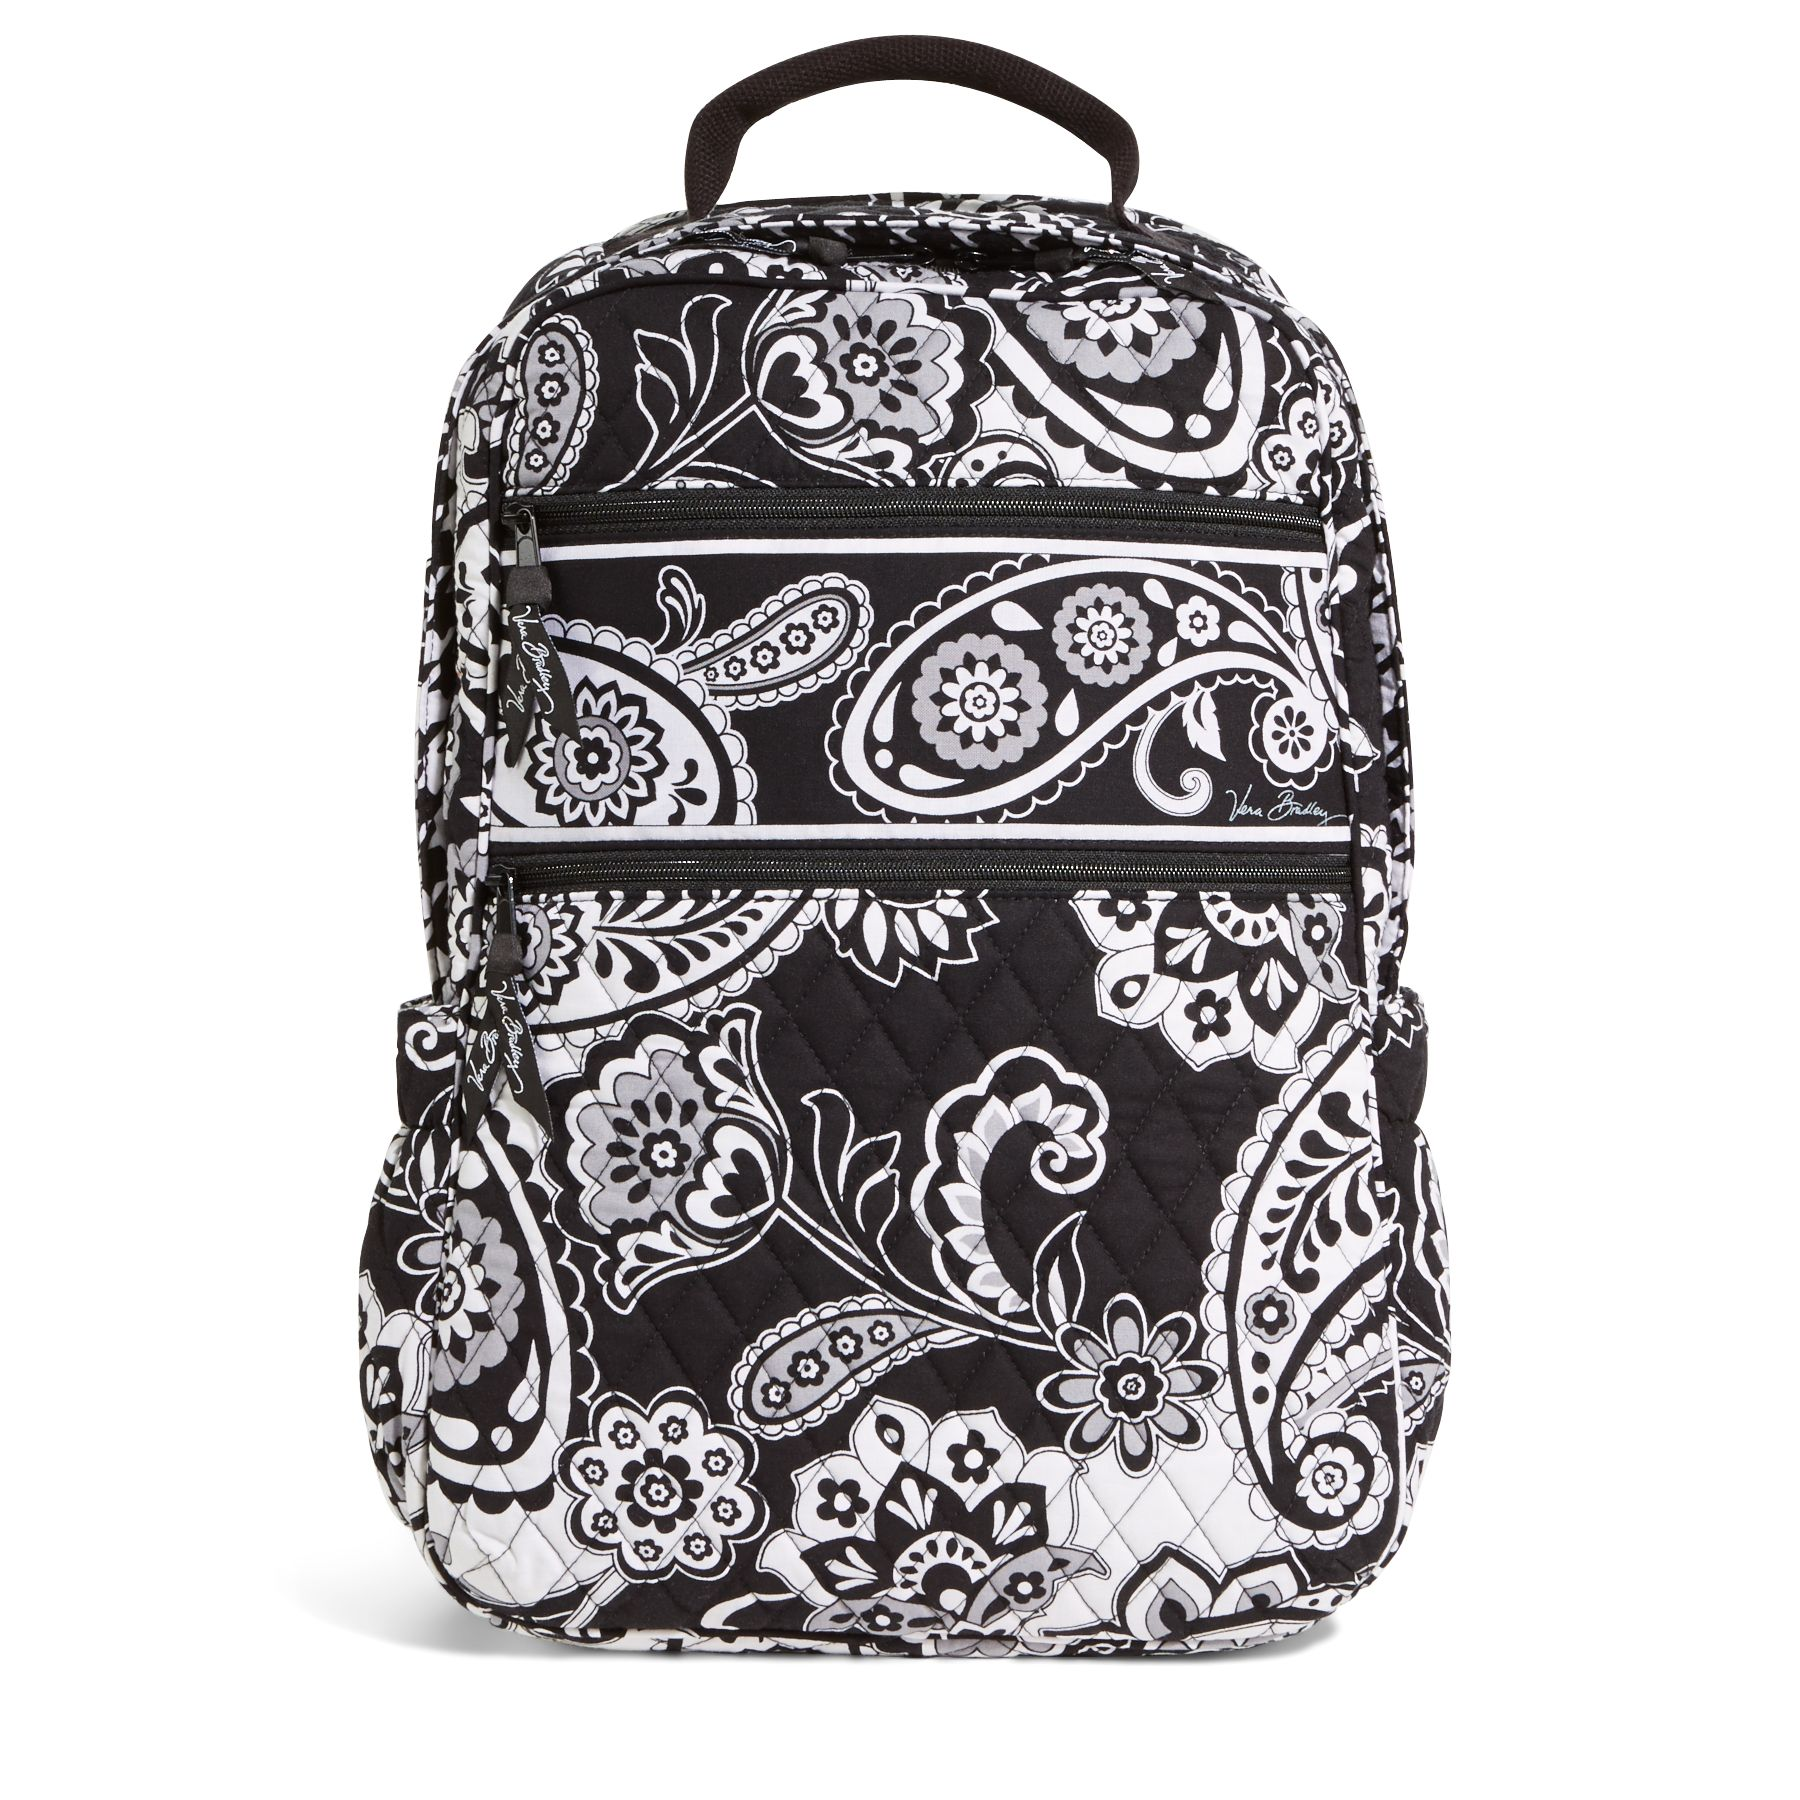 Vera Bradley Tech Backpack in Midnight Paisley